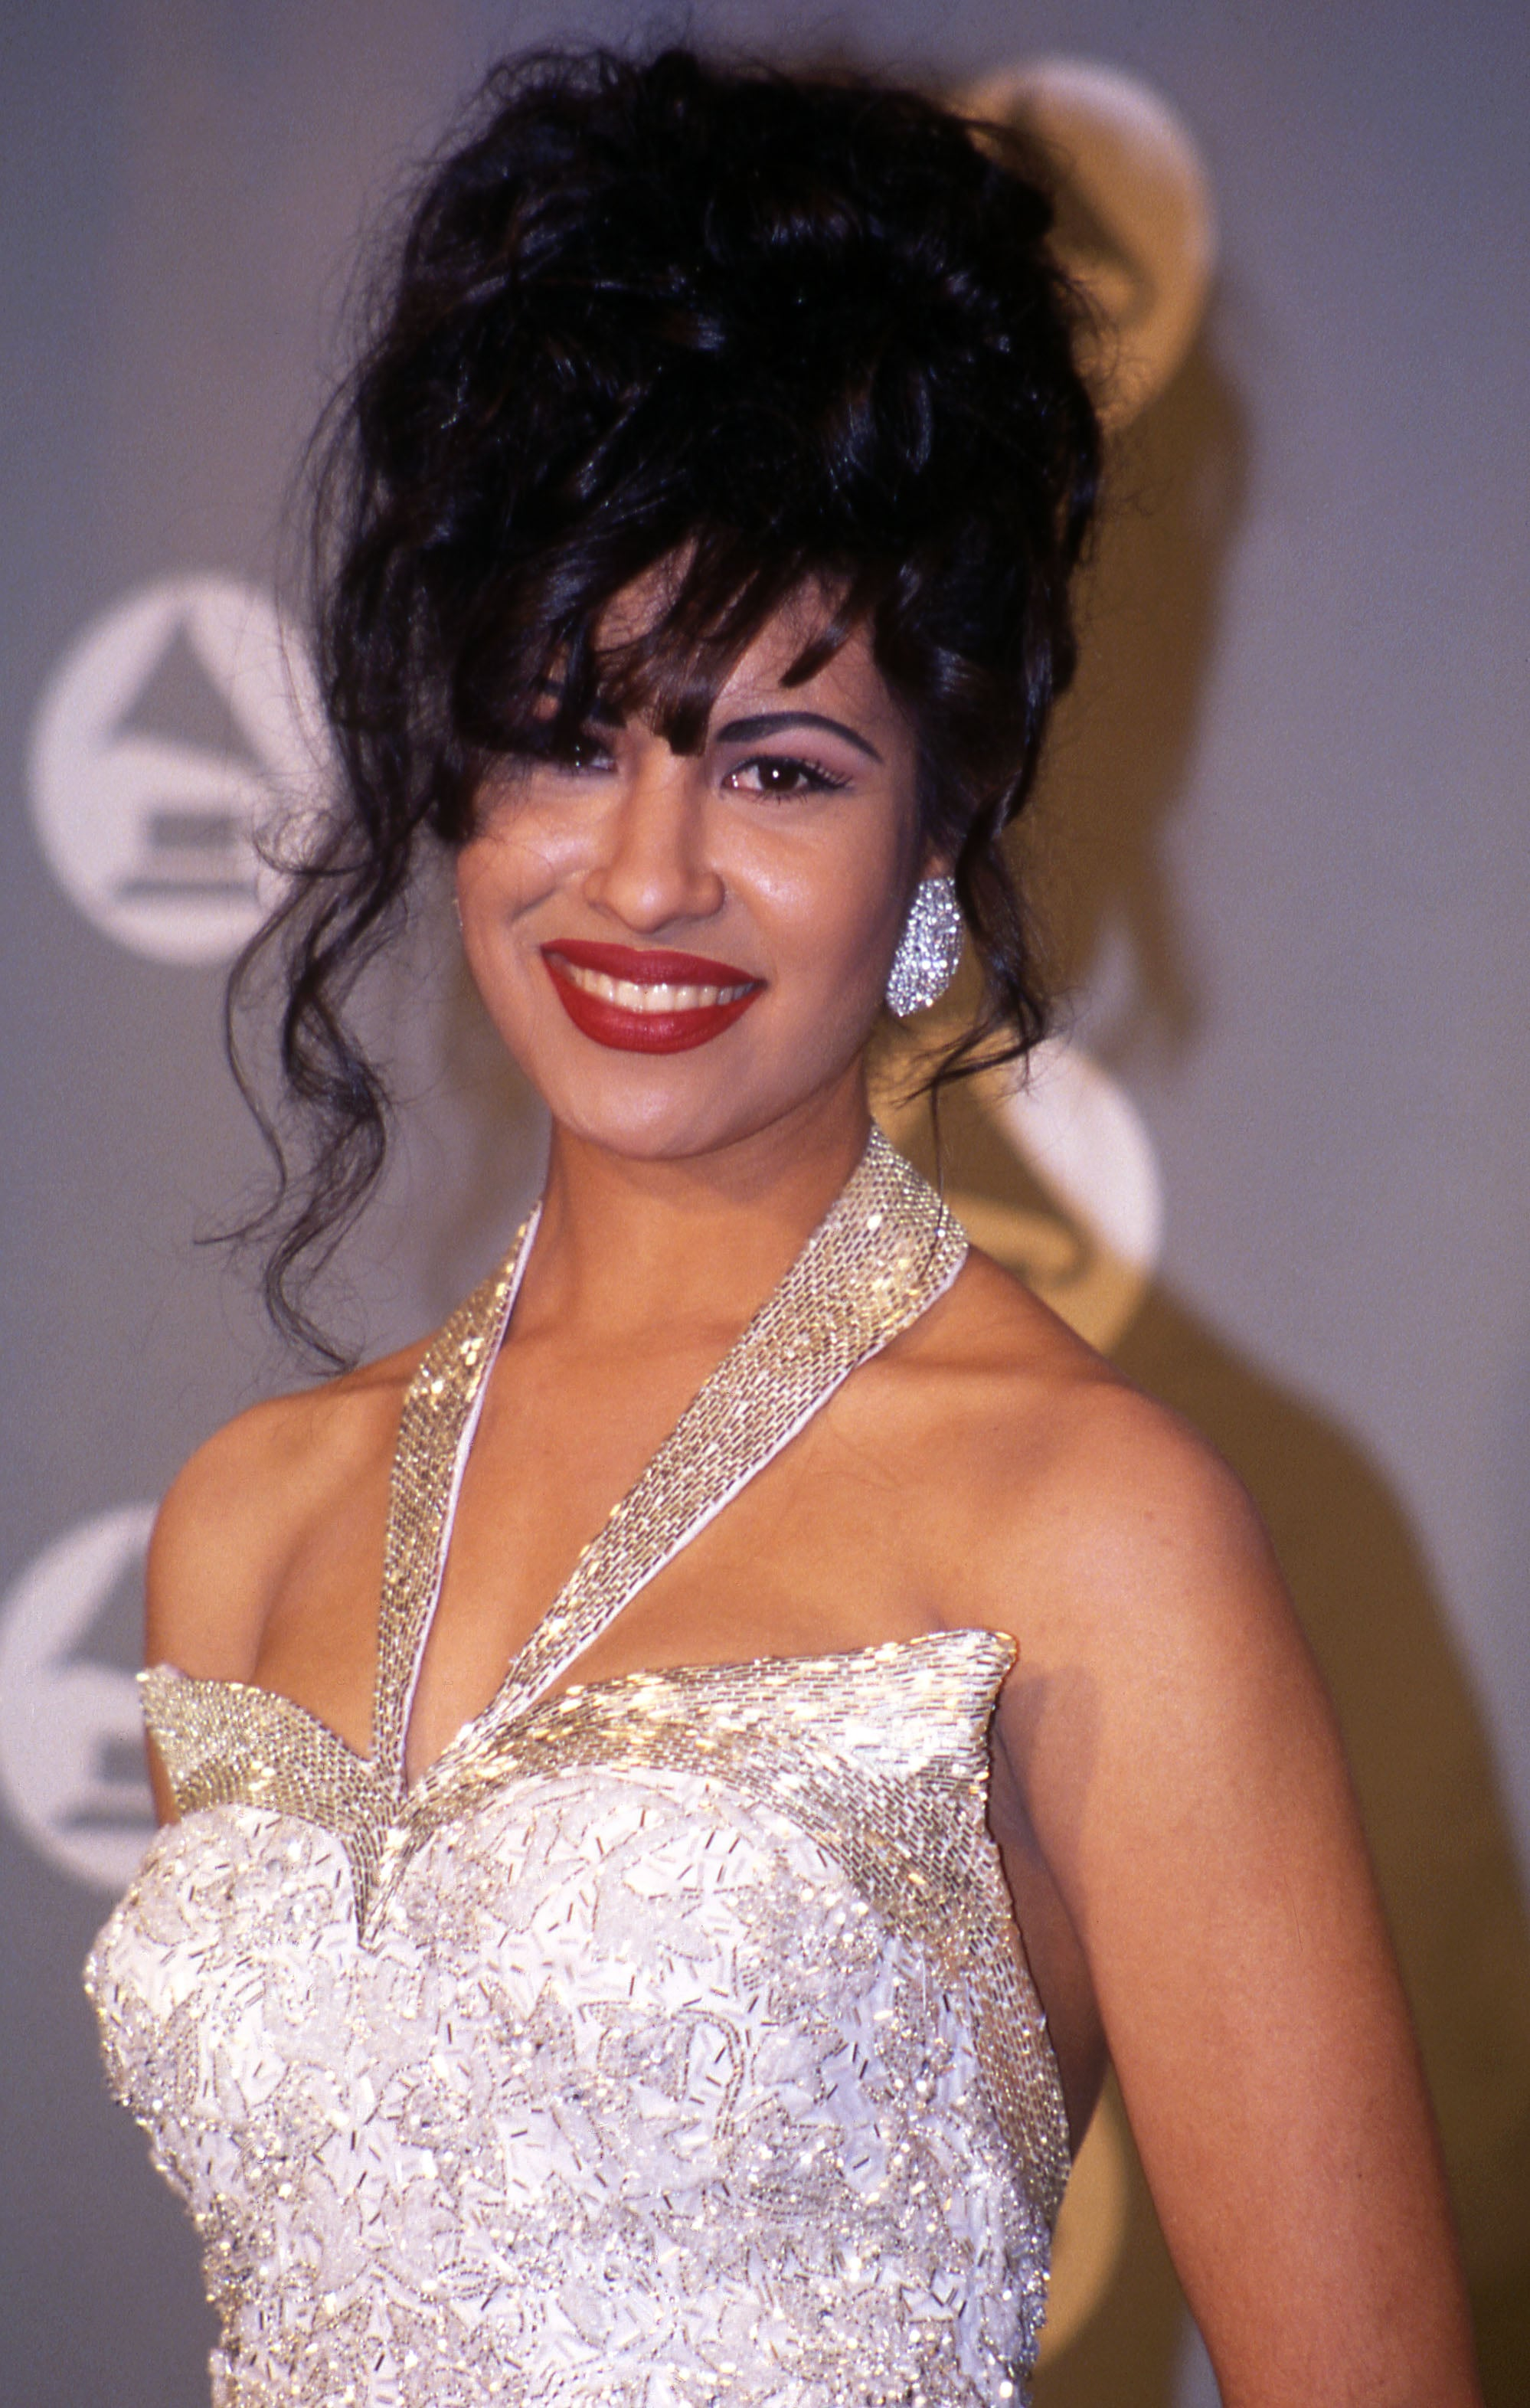 UNITED STATES - MARCH 09:  Selena in the press room at the 1994 Grammy Awards in New York City, New York  (Photo by Vinnie Zuffante/Getty Images)